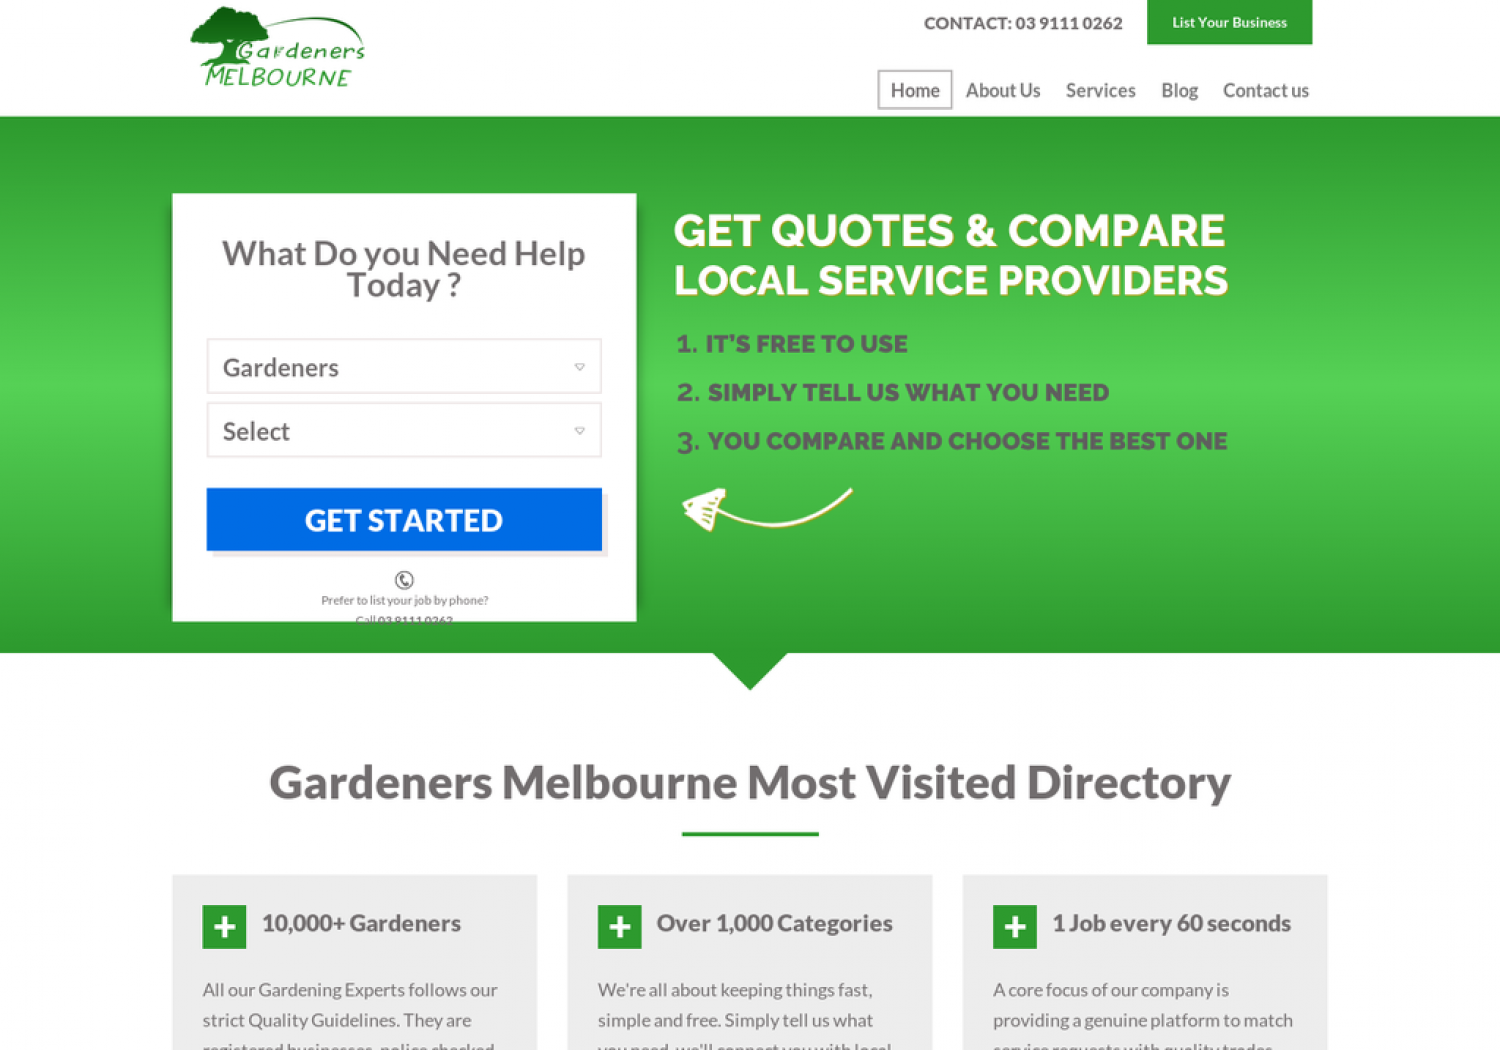 Gardeners Melbourne - Best Gardening Services in Melbourne Infographic